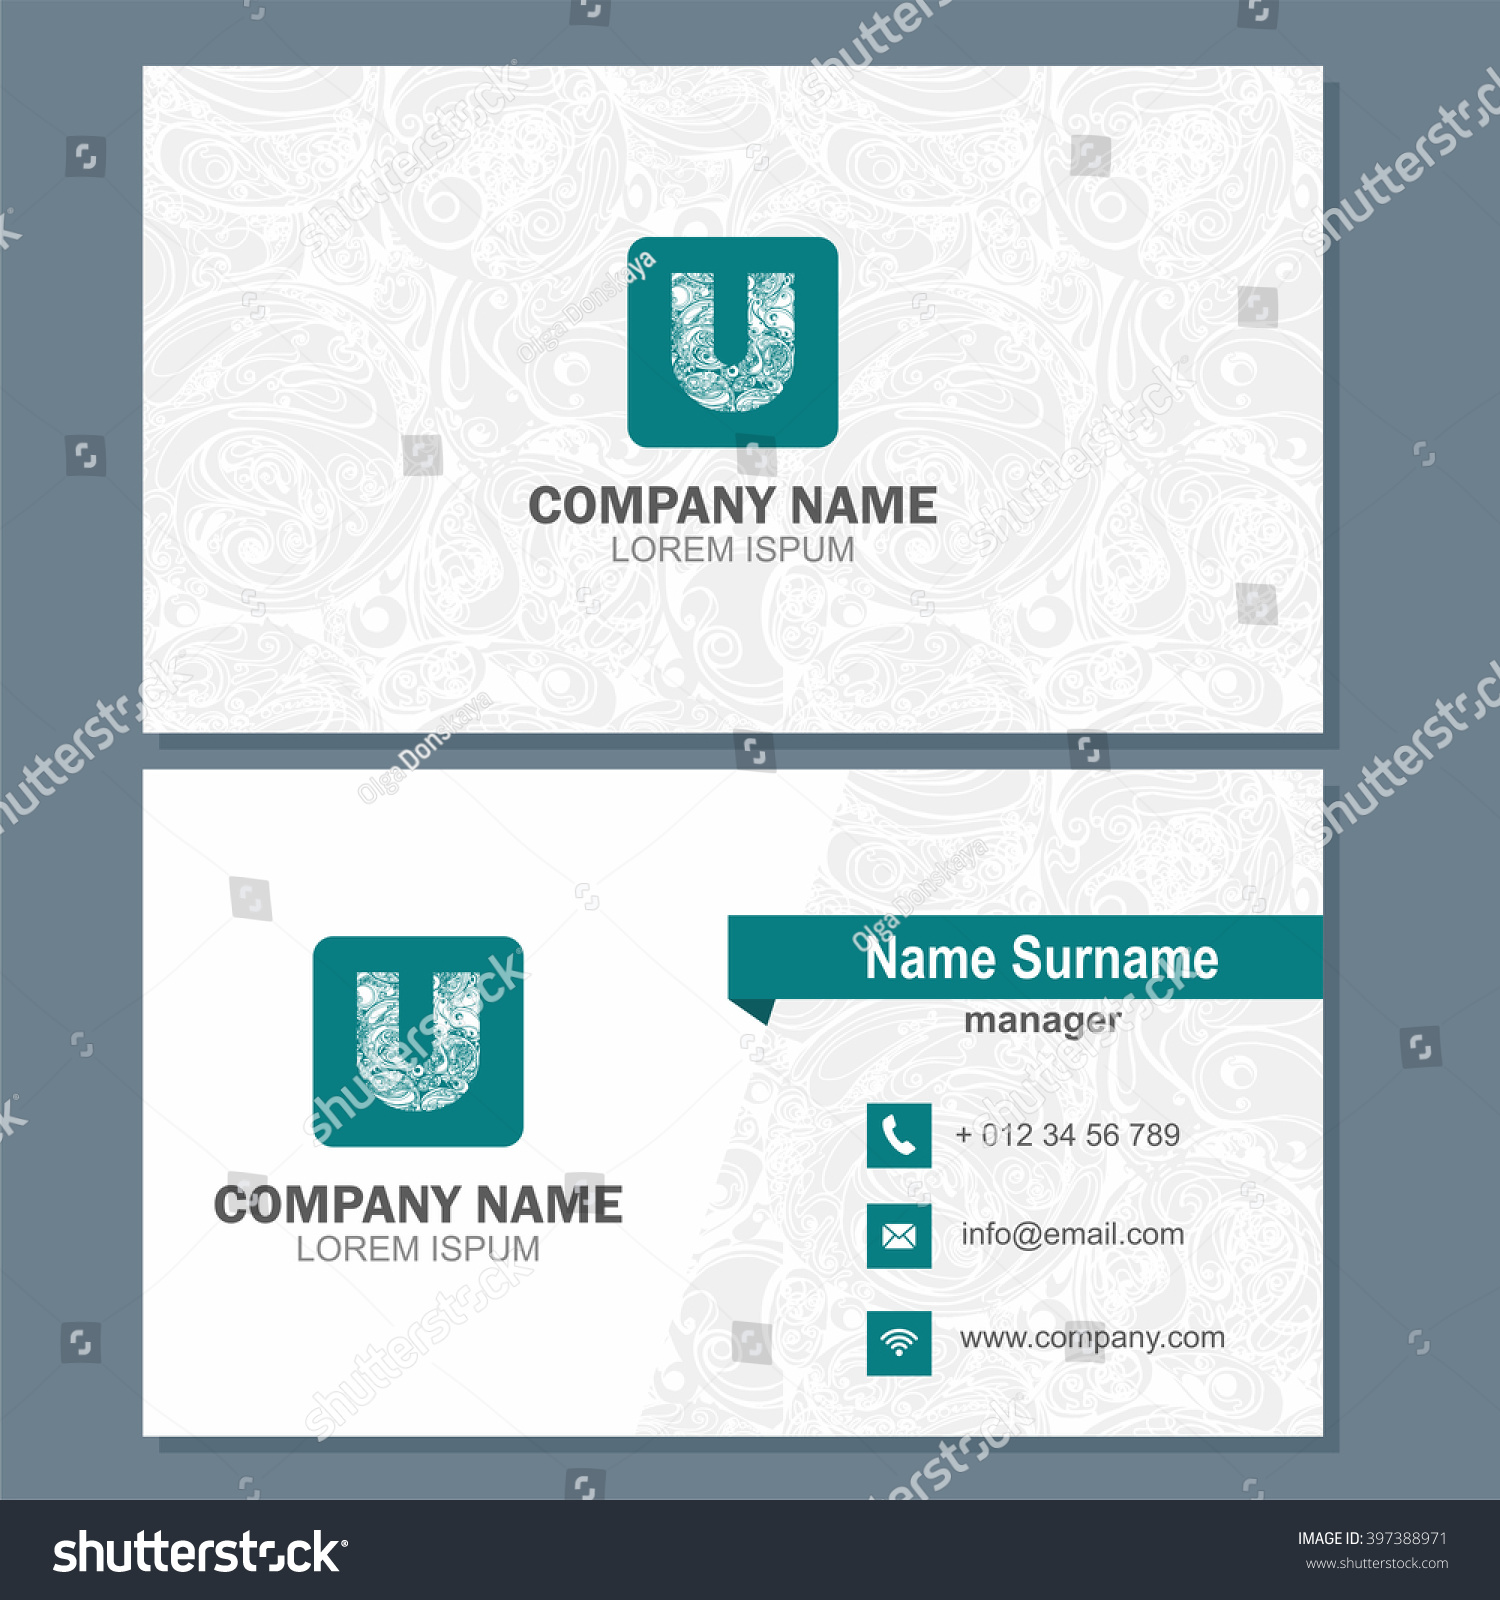 business card visiting card template logo stock vector